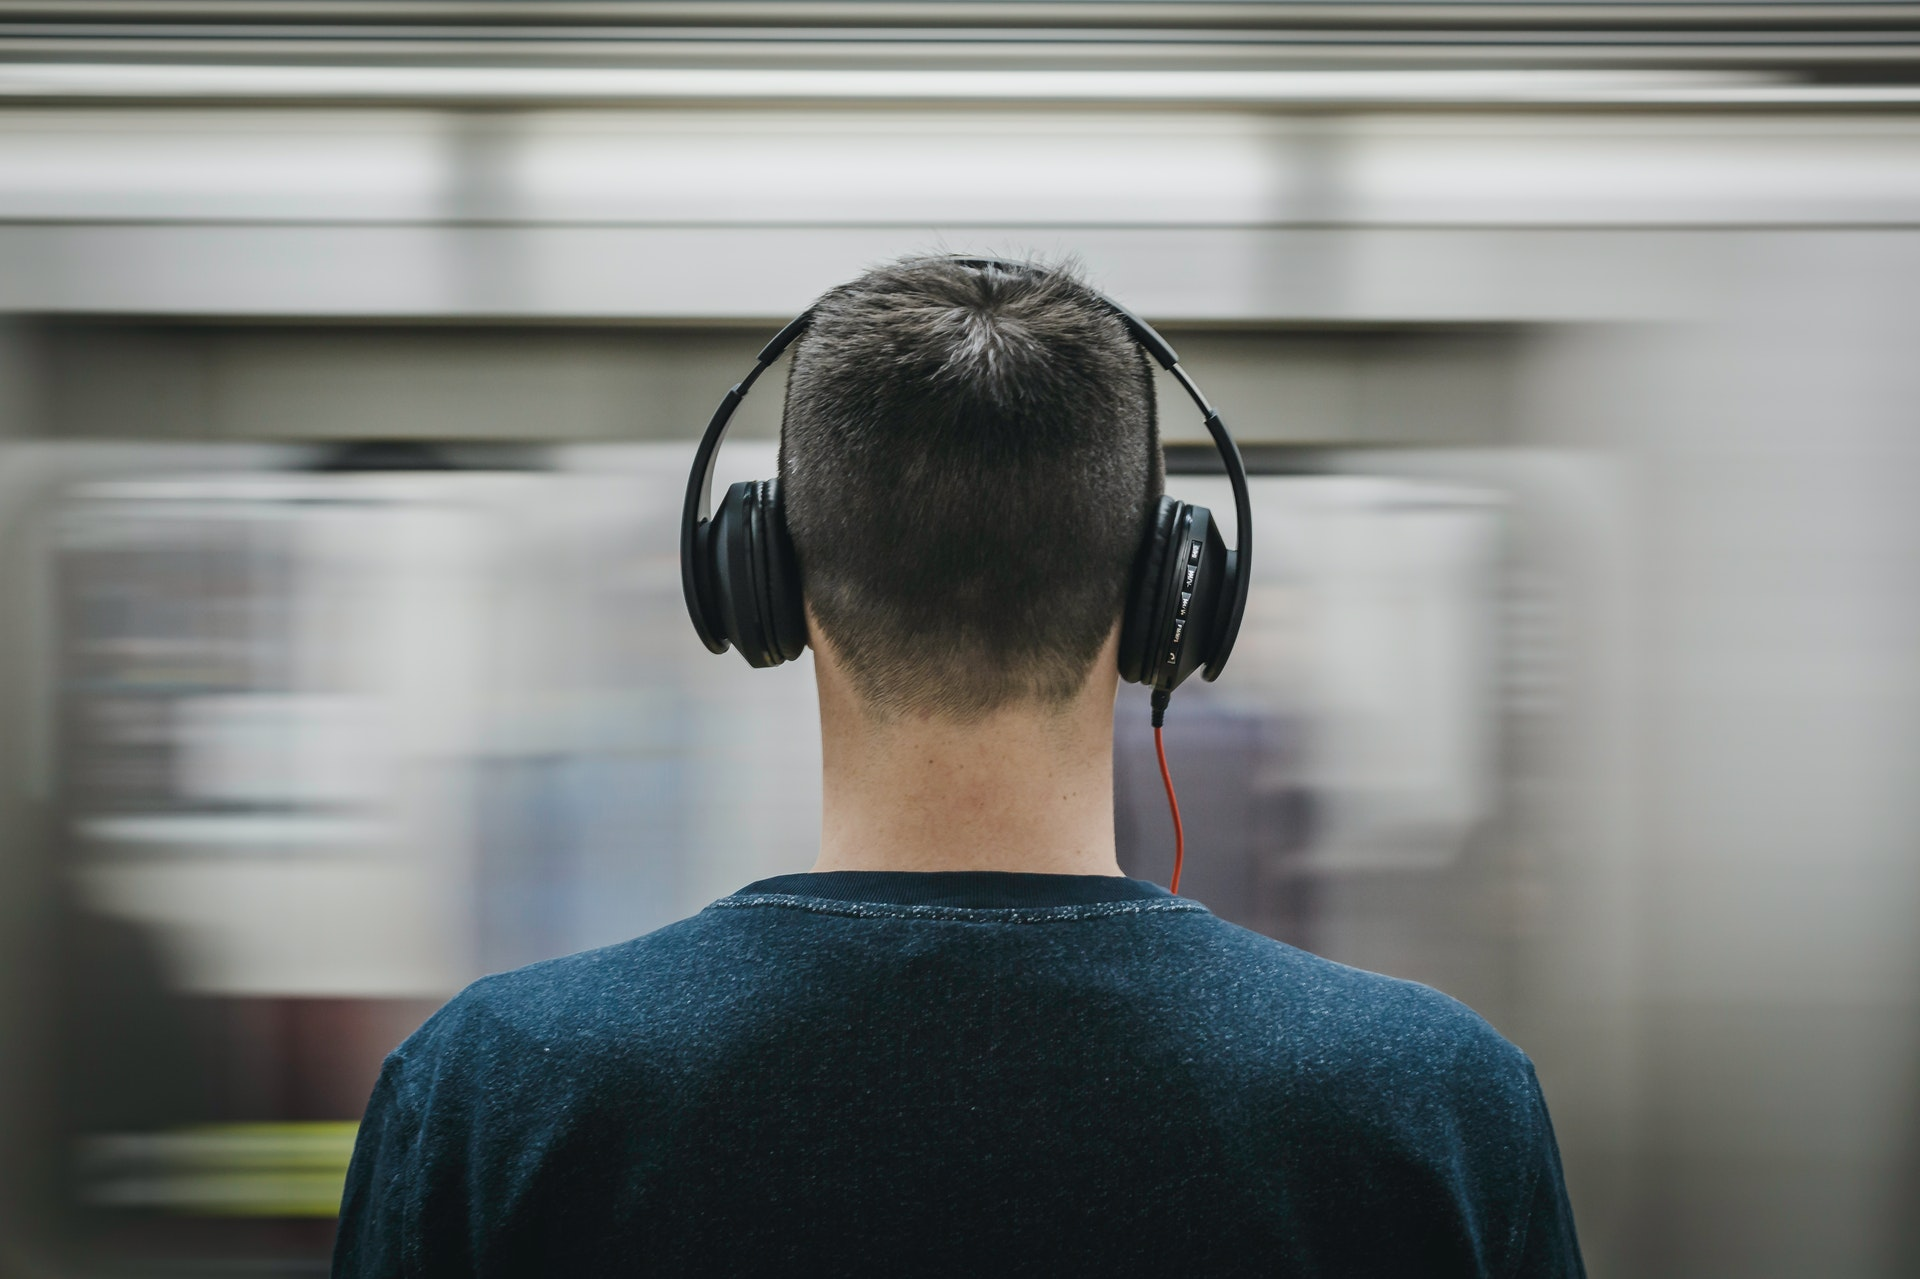 Man in public listening to loud music through his headphones, potentially causing noise-induced hearing loss